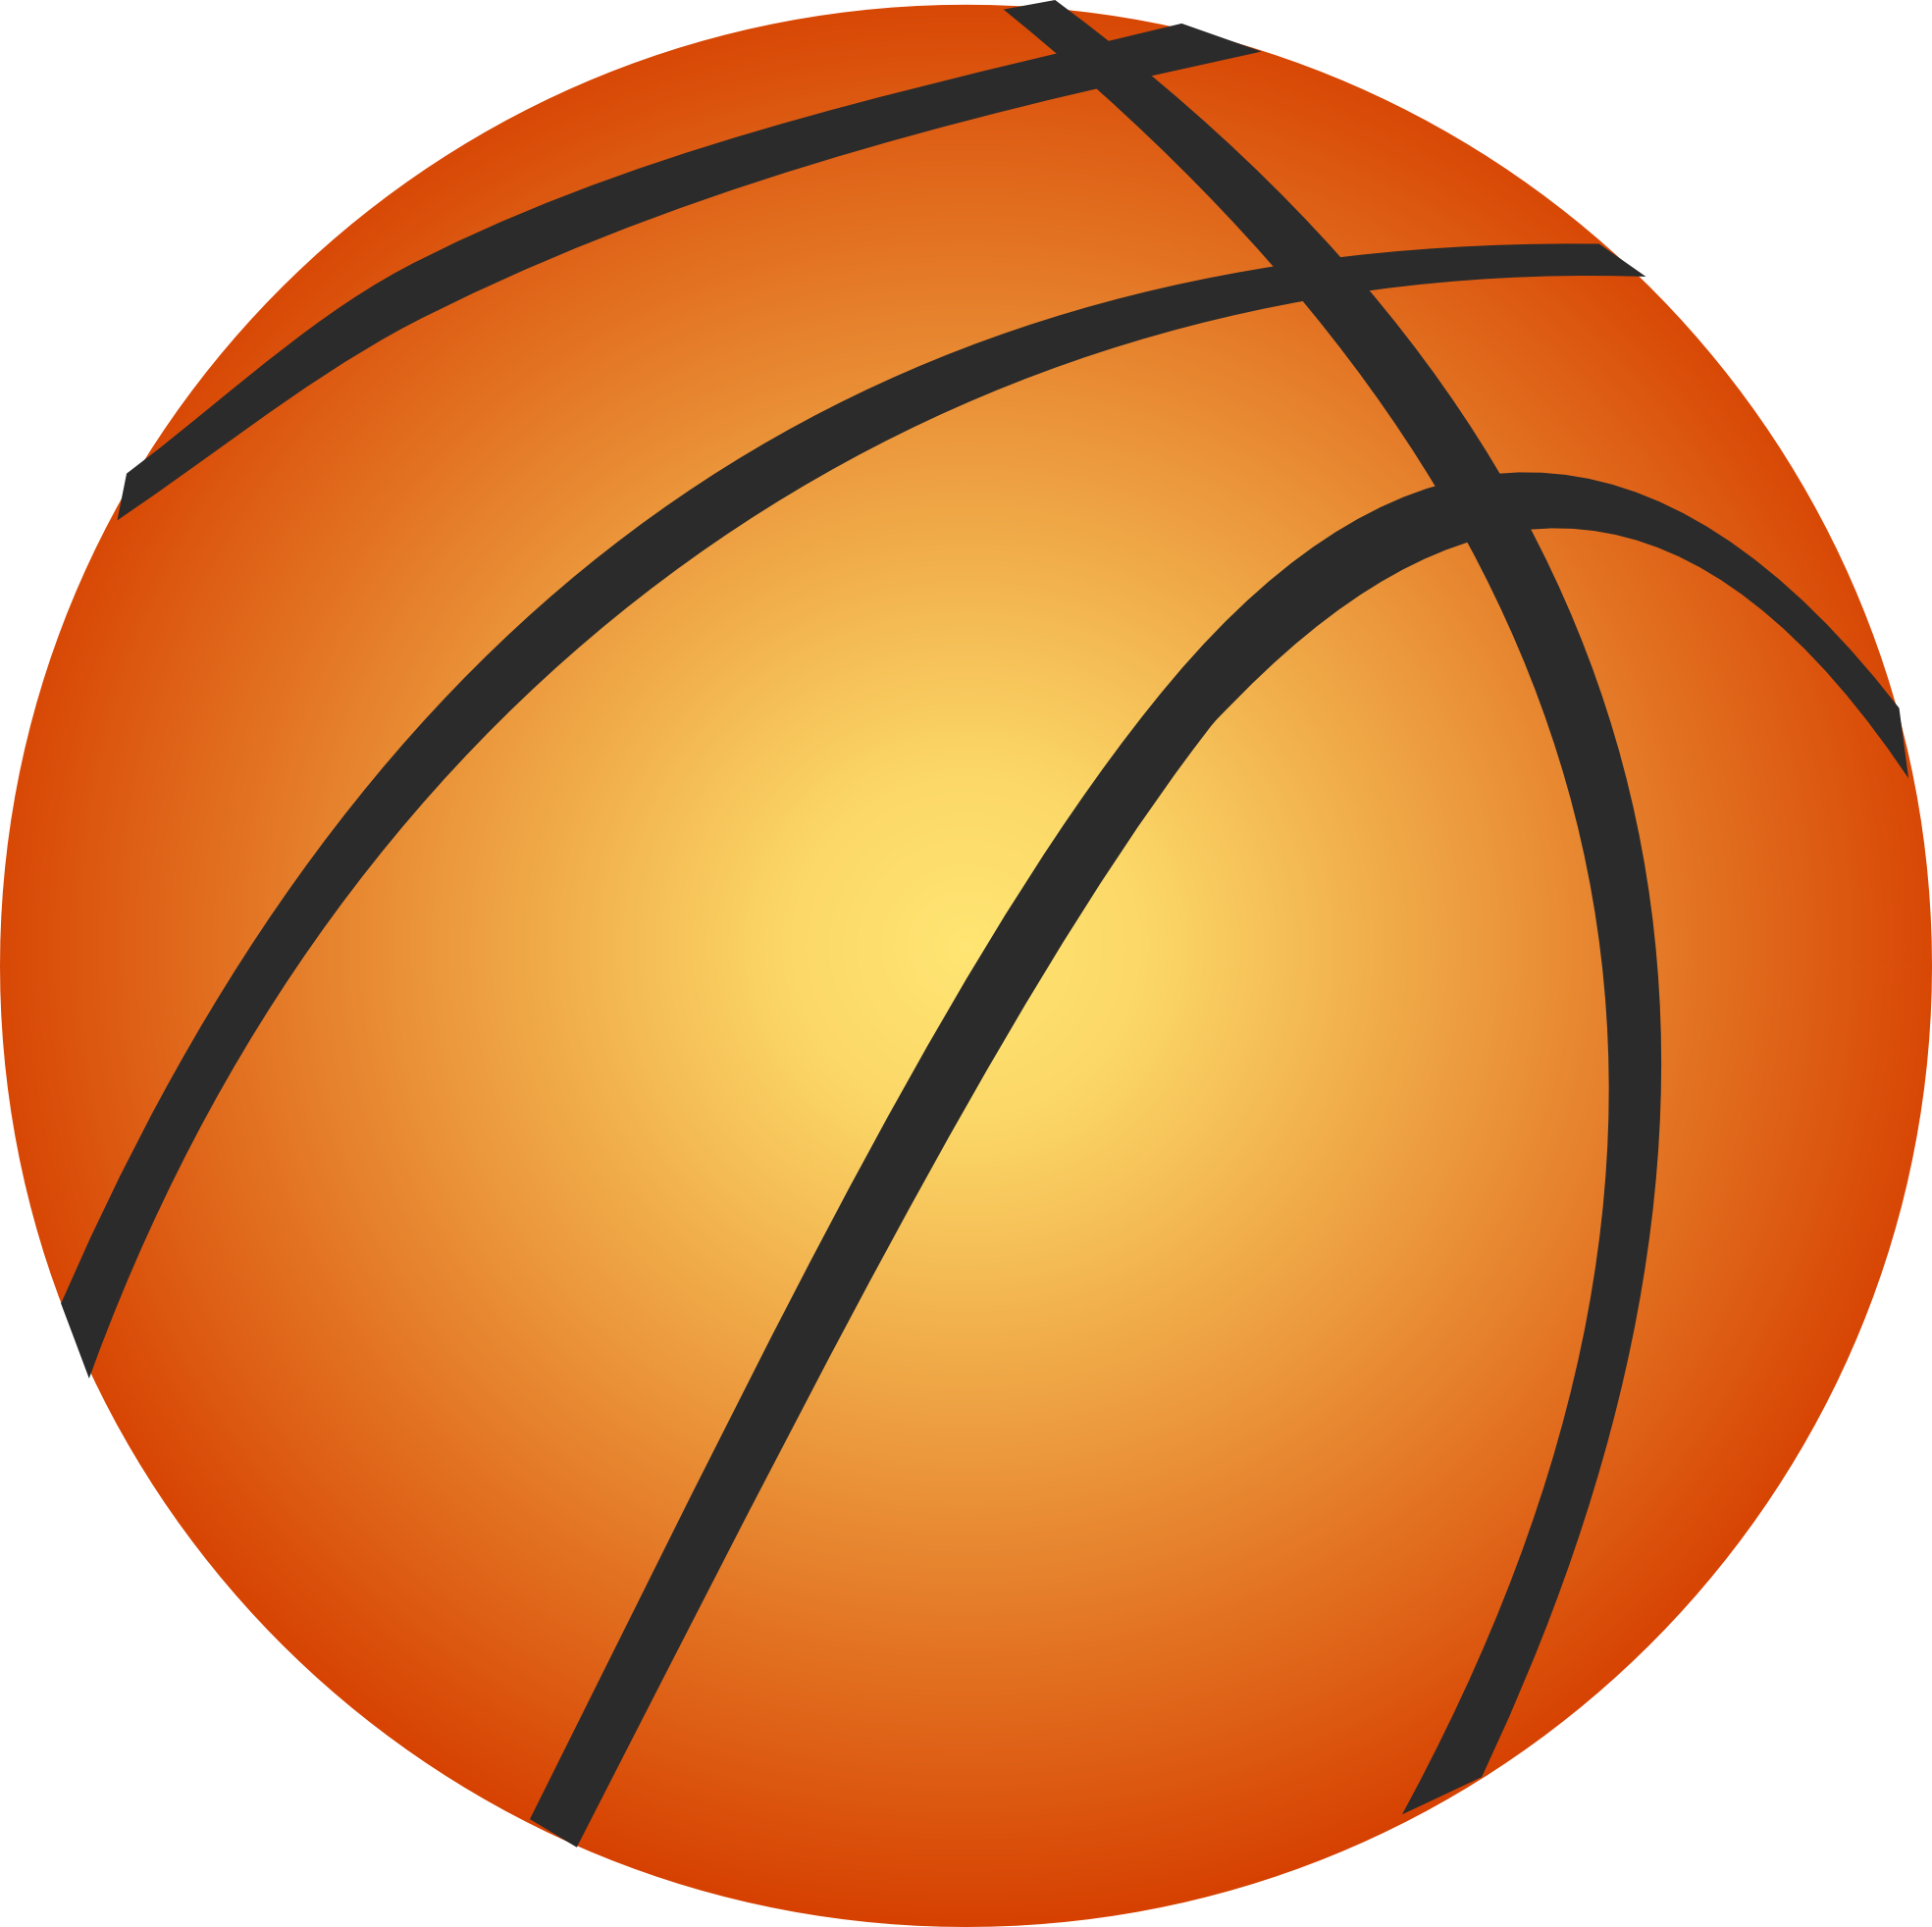 basketball court clipart blac - Basketball Clipart Images